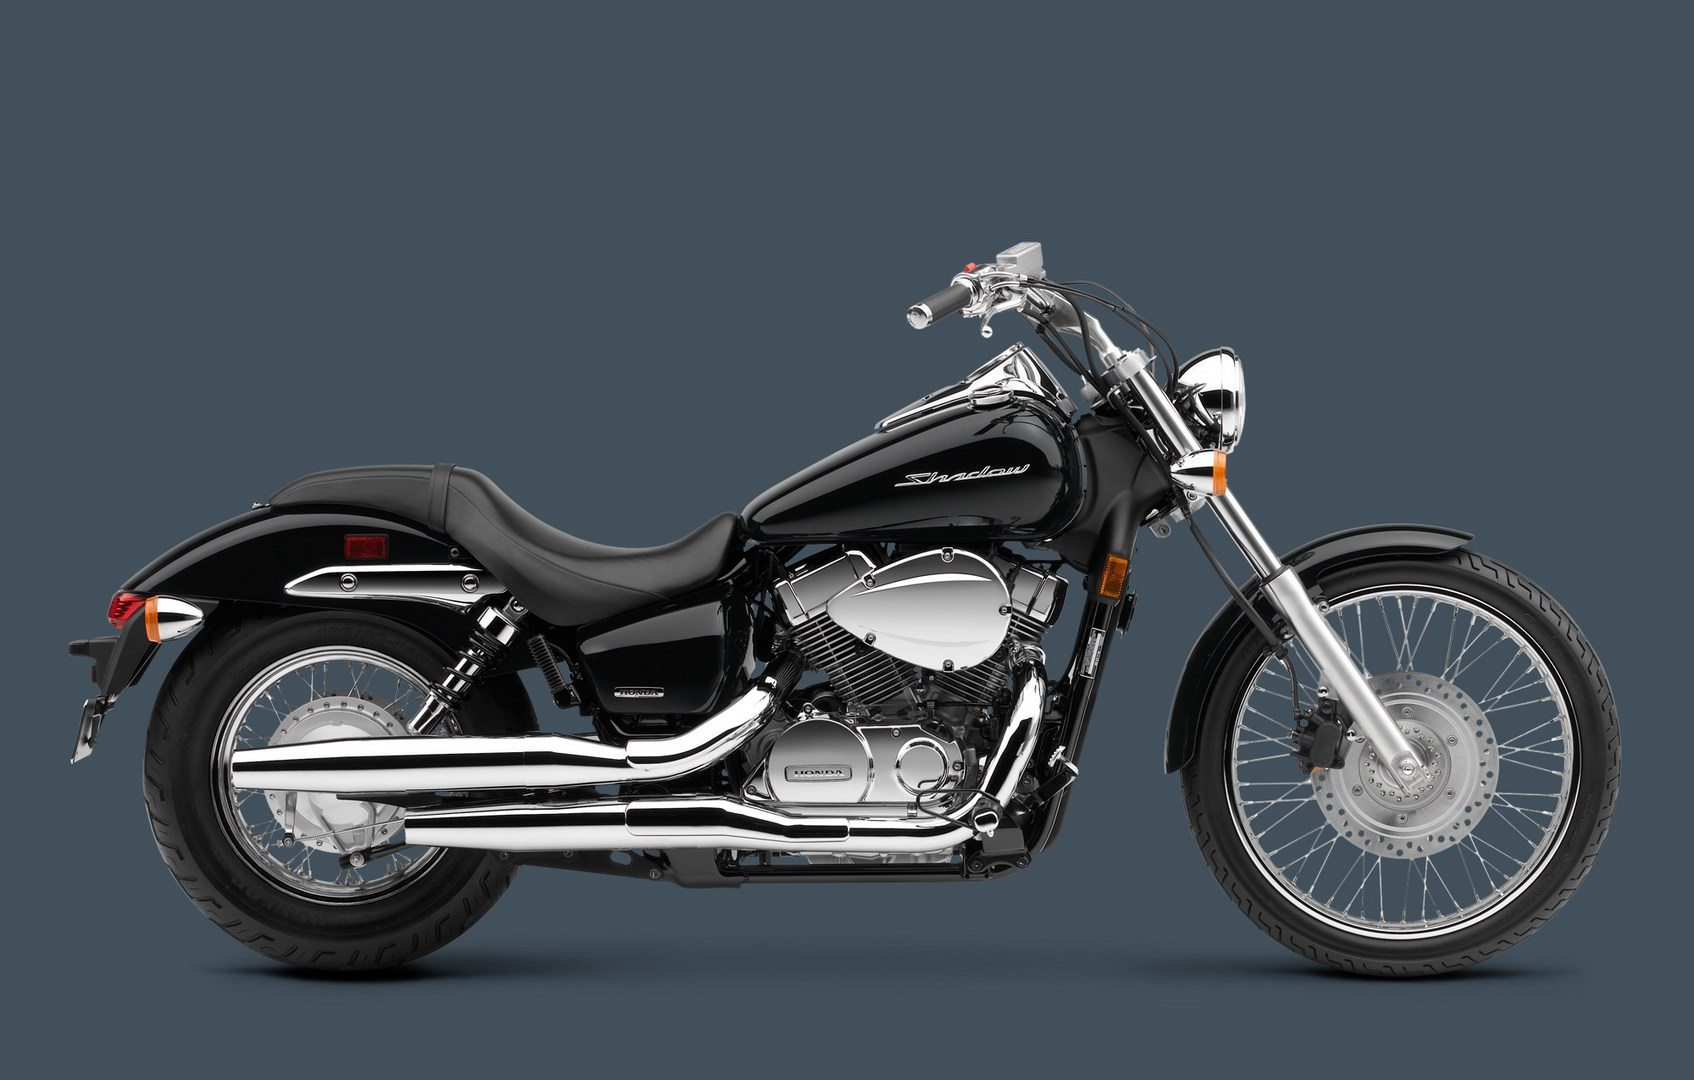 2013 Shadow Spirit 750 Honda S Classic Approach To Cruisers Autoevolution